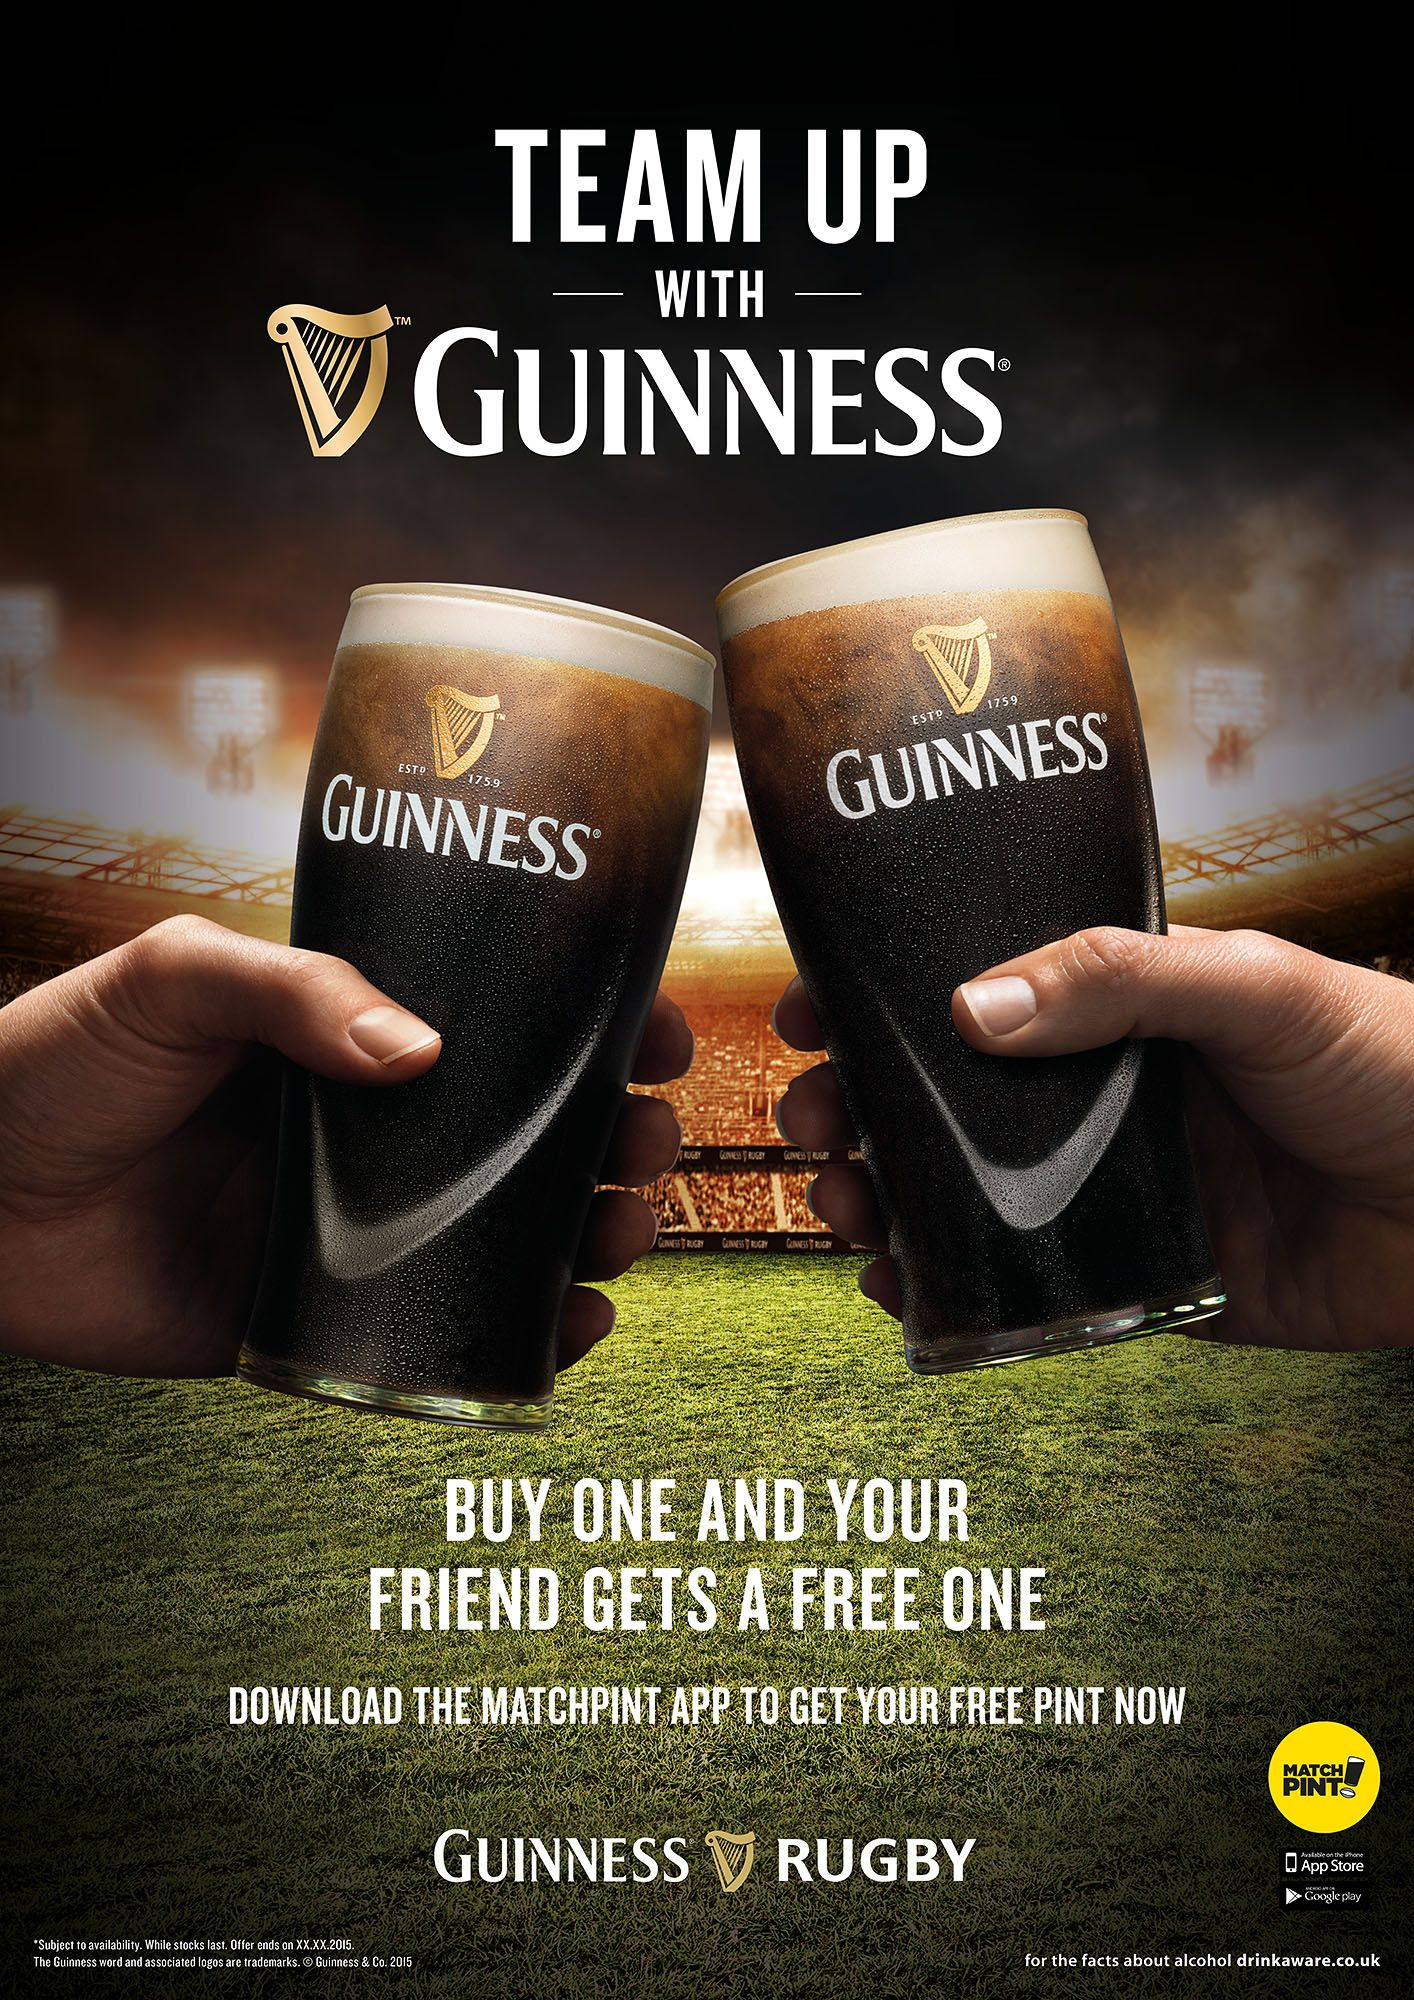 Guinness X Rugby World Cup Campaign Shot By Jonathan Knowles Guinness Rugby Beer Stout Ireland England Sport Worldcup Beer Guinness Pilsner Glass